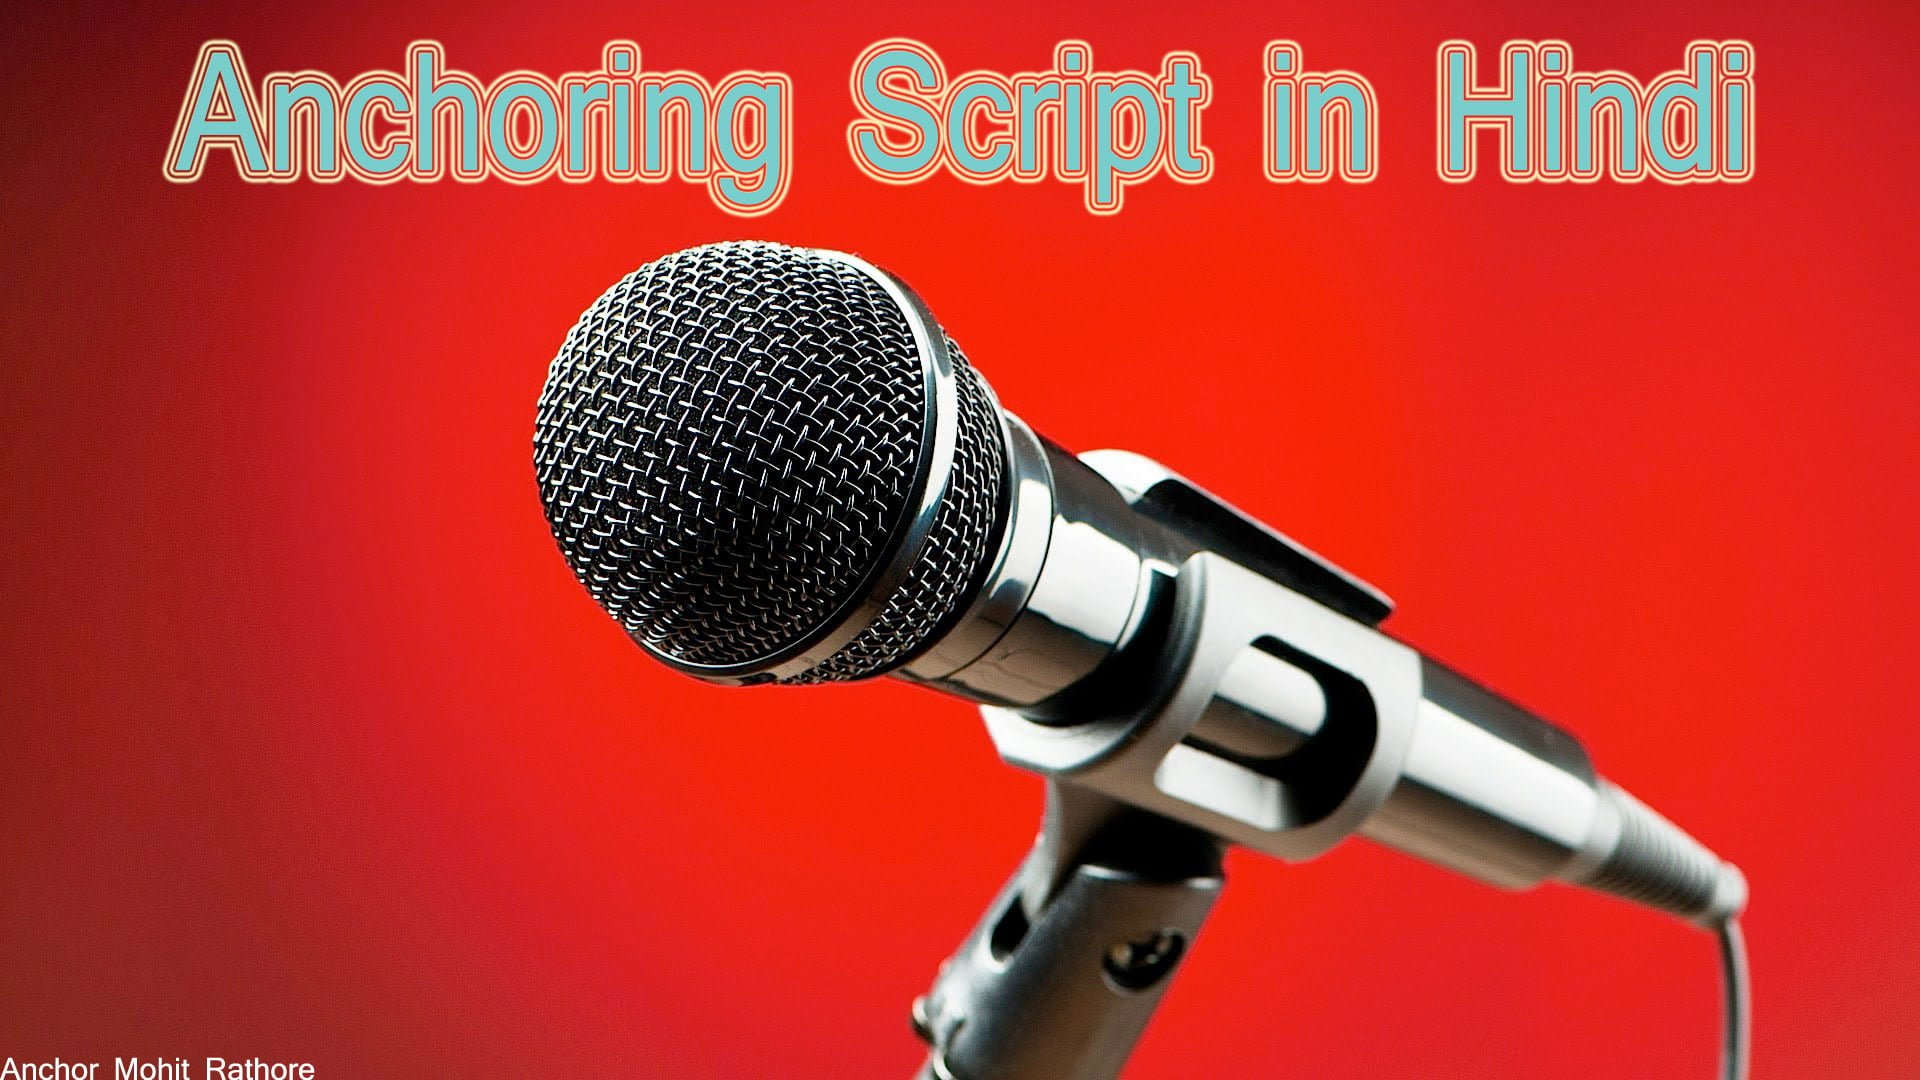 Anchoring script for annual function in hindi - Anchoring Script | मंच सञ्चालन कैसे करें!